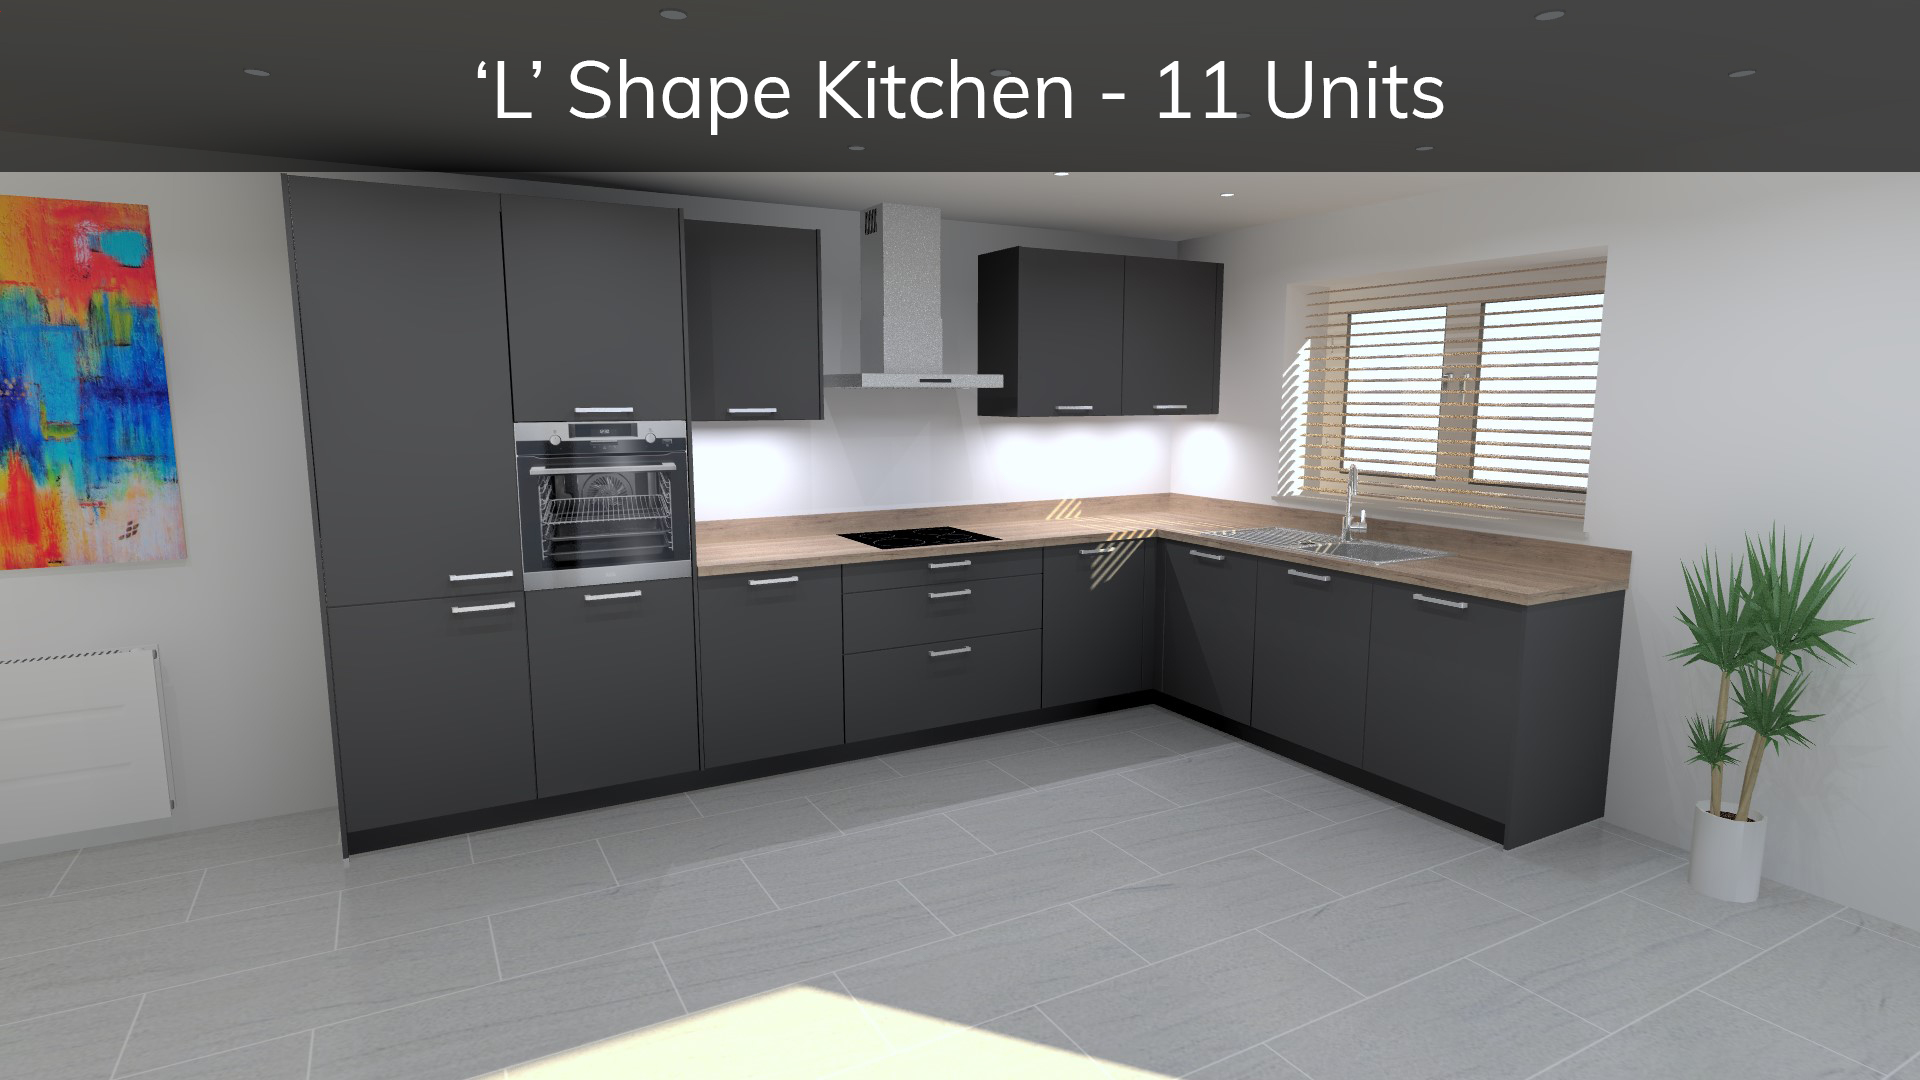 L shape kitchen - german kitchen price guide - how much does a schuller kitchen cost